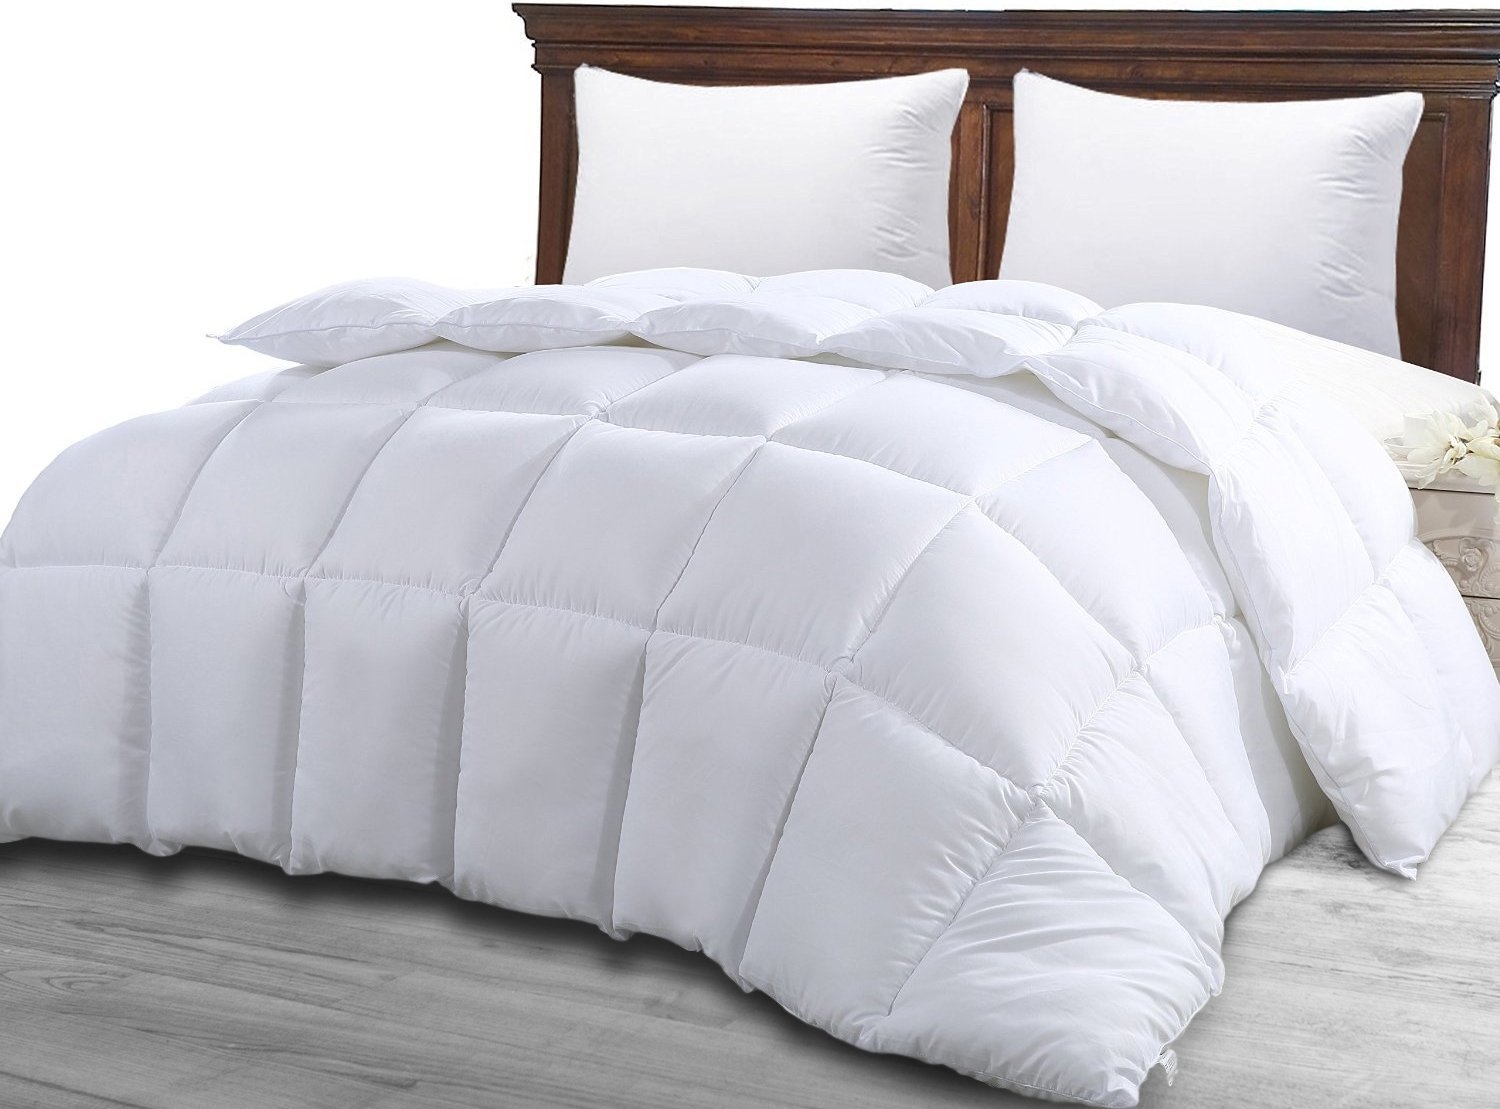 124 of over results for home u0026 kitchen bedding comforters u0026 sets comforter sets